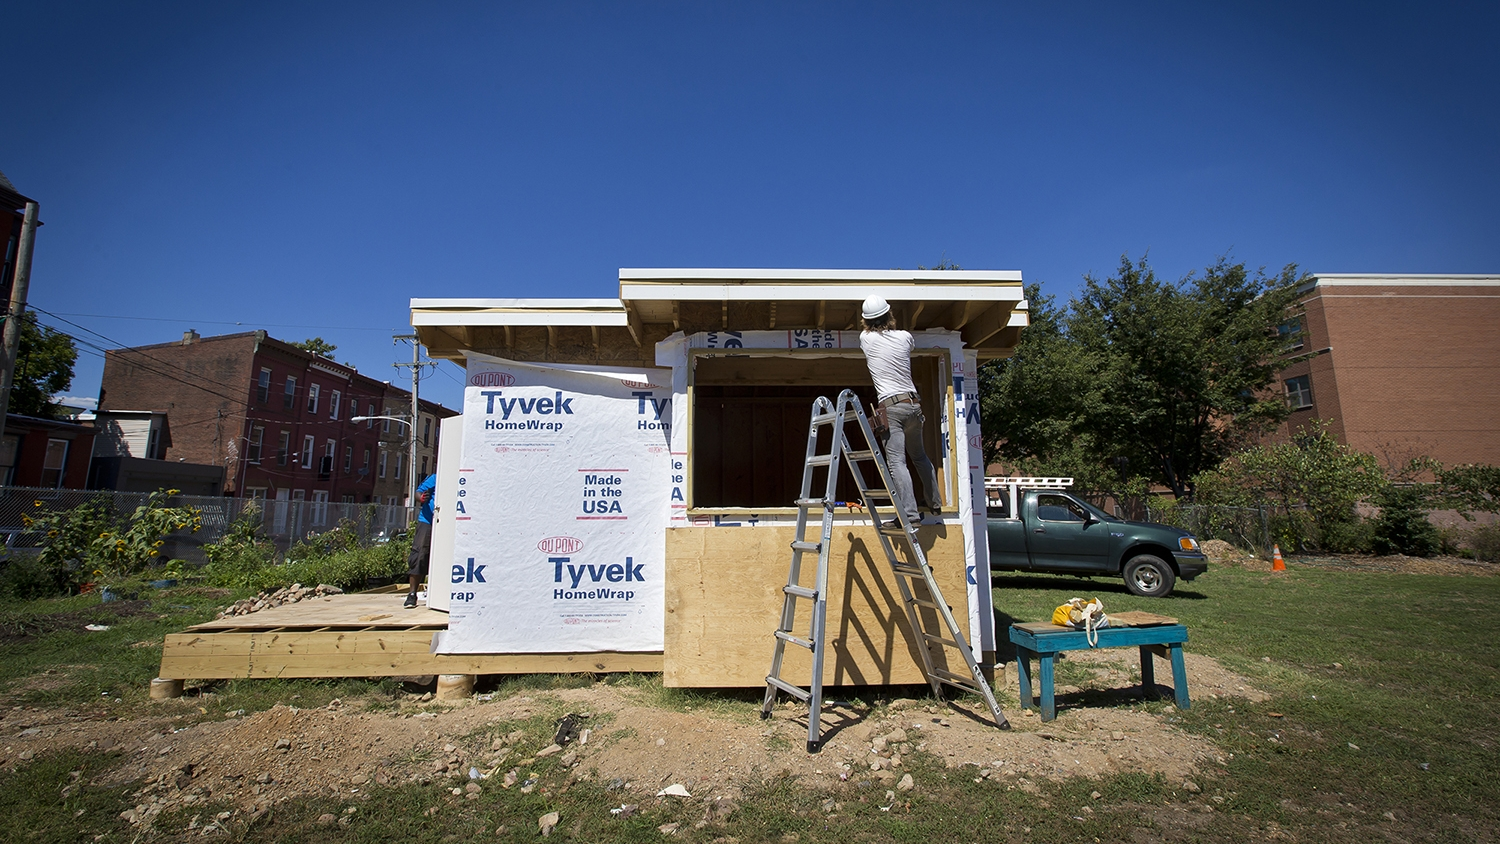 The tiny house under construction.